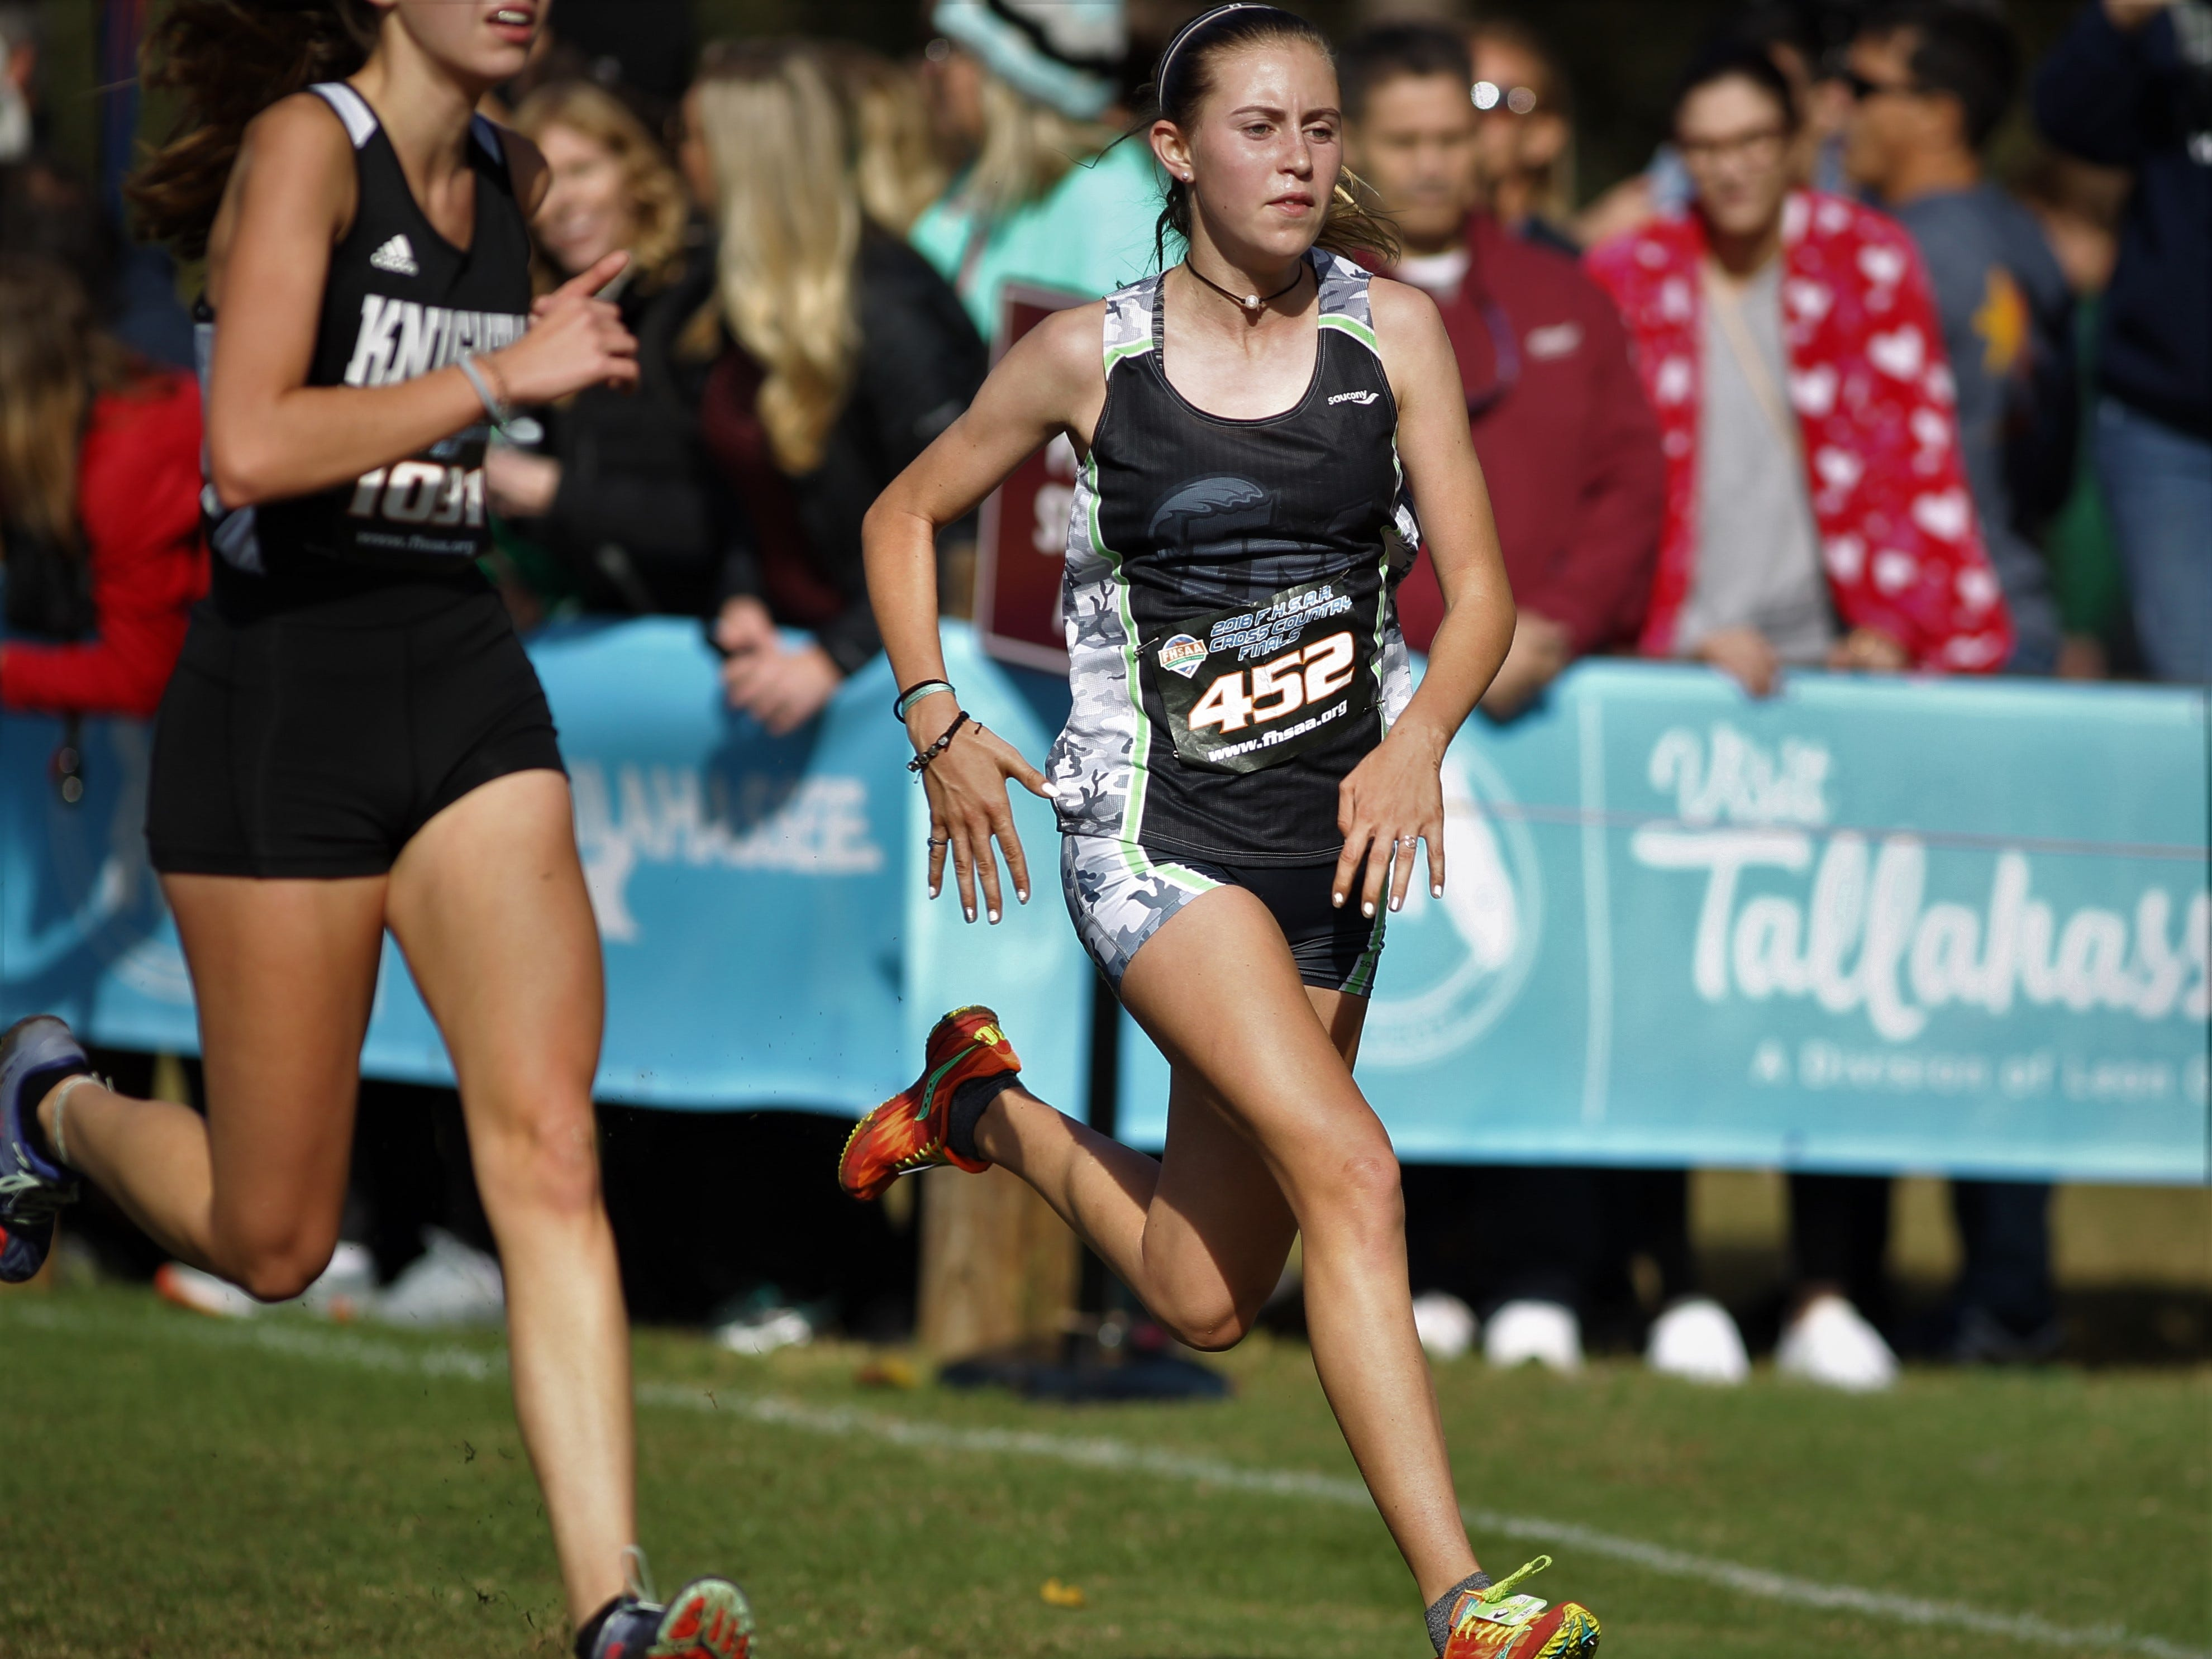 Fort Myers freshman Ava Lees races at the FHSAA Cross Country State Championships at Apalachee Regional Park in Tallahassee, Saturday, Nov. 11, 2018.